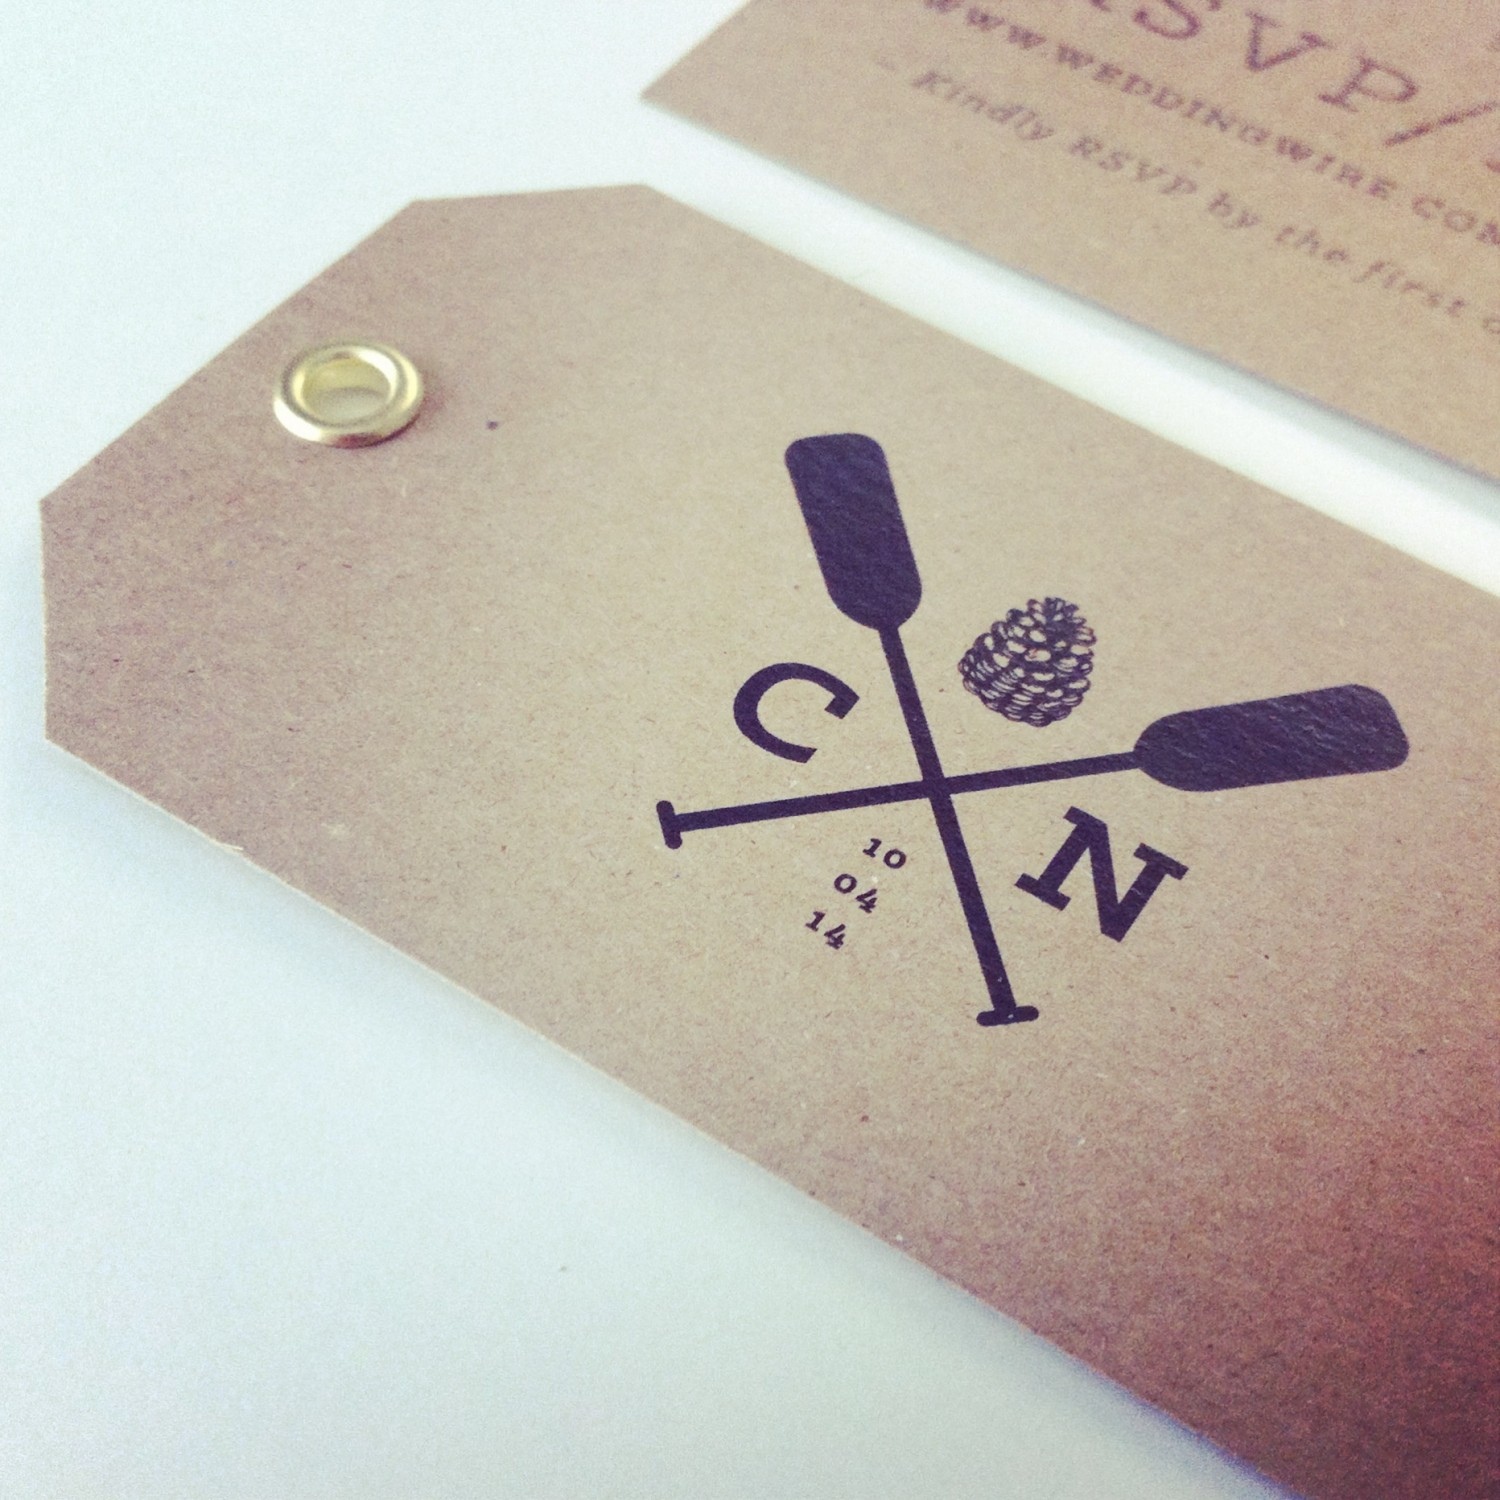 wedding invitation kraft tags with gold eyelet and logo, wedding invitation design, RSVP tag, custom design, kraft paper, woods, maine, canoe paddles